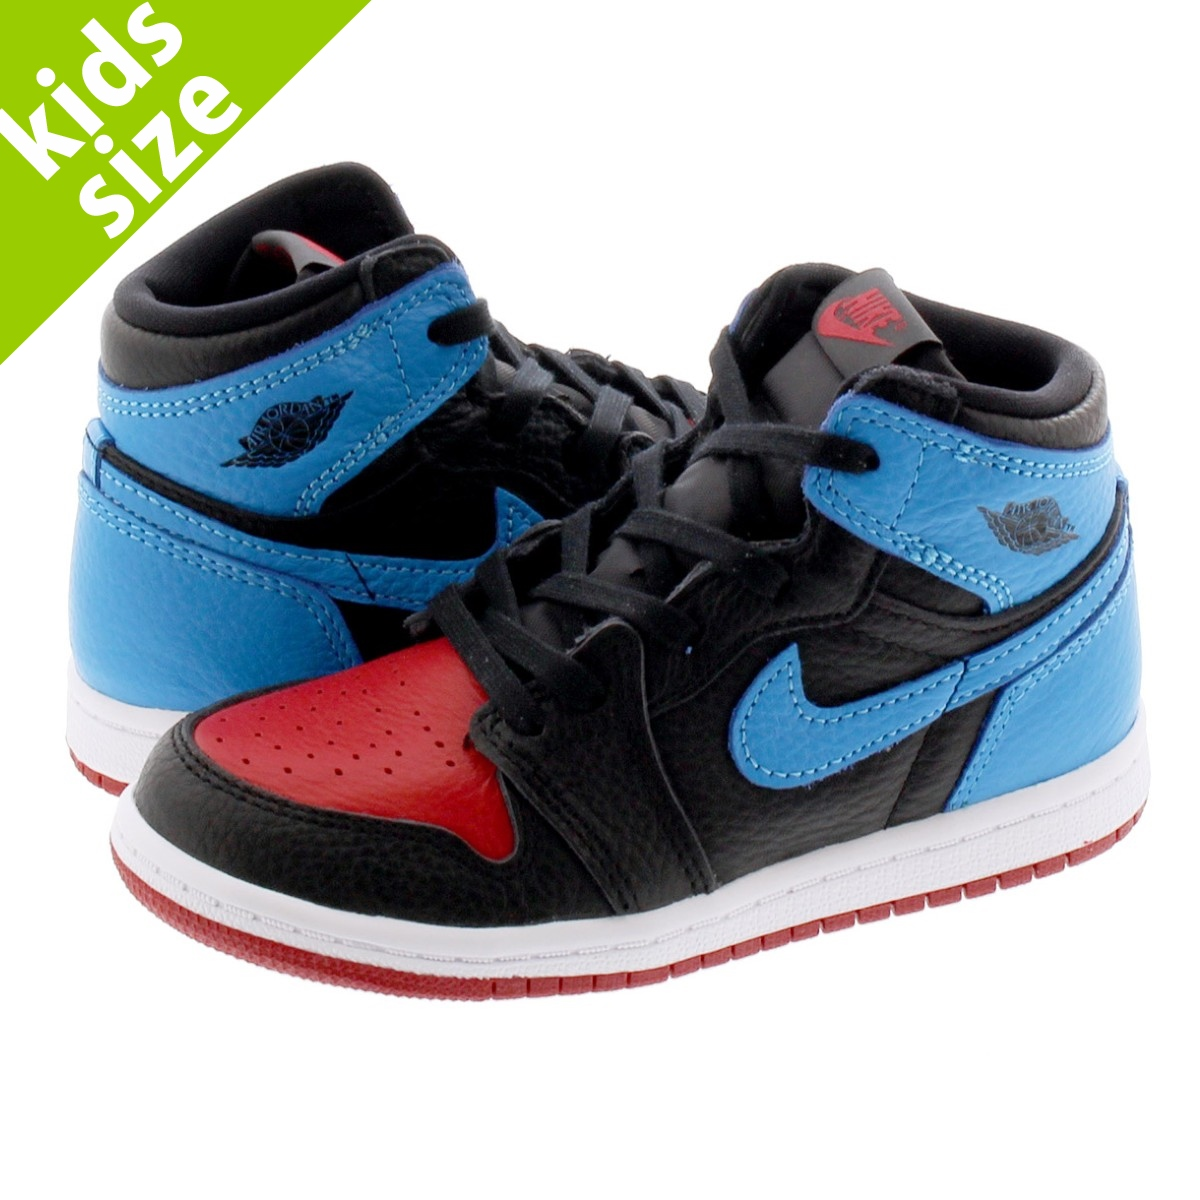 【キッズサイズ】【8.0~16.0cm】 NIKE AIR JORDAN 1 HIGH OG TD 【UNC TO CHICAGO】 ナイキ エア ジョーダン 1 ハイ OG TD BLACK/DK POWDER BLUE/GYM RED cu0450-046